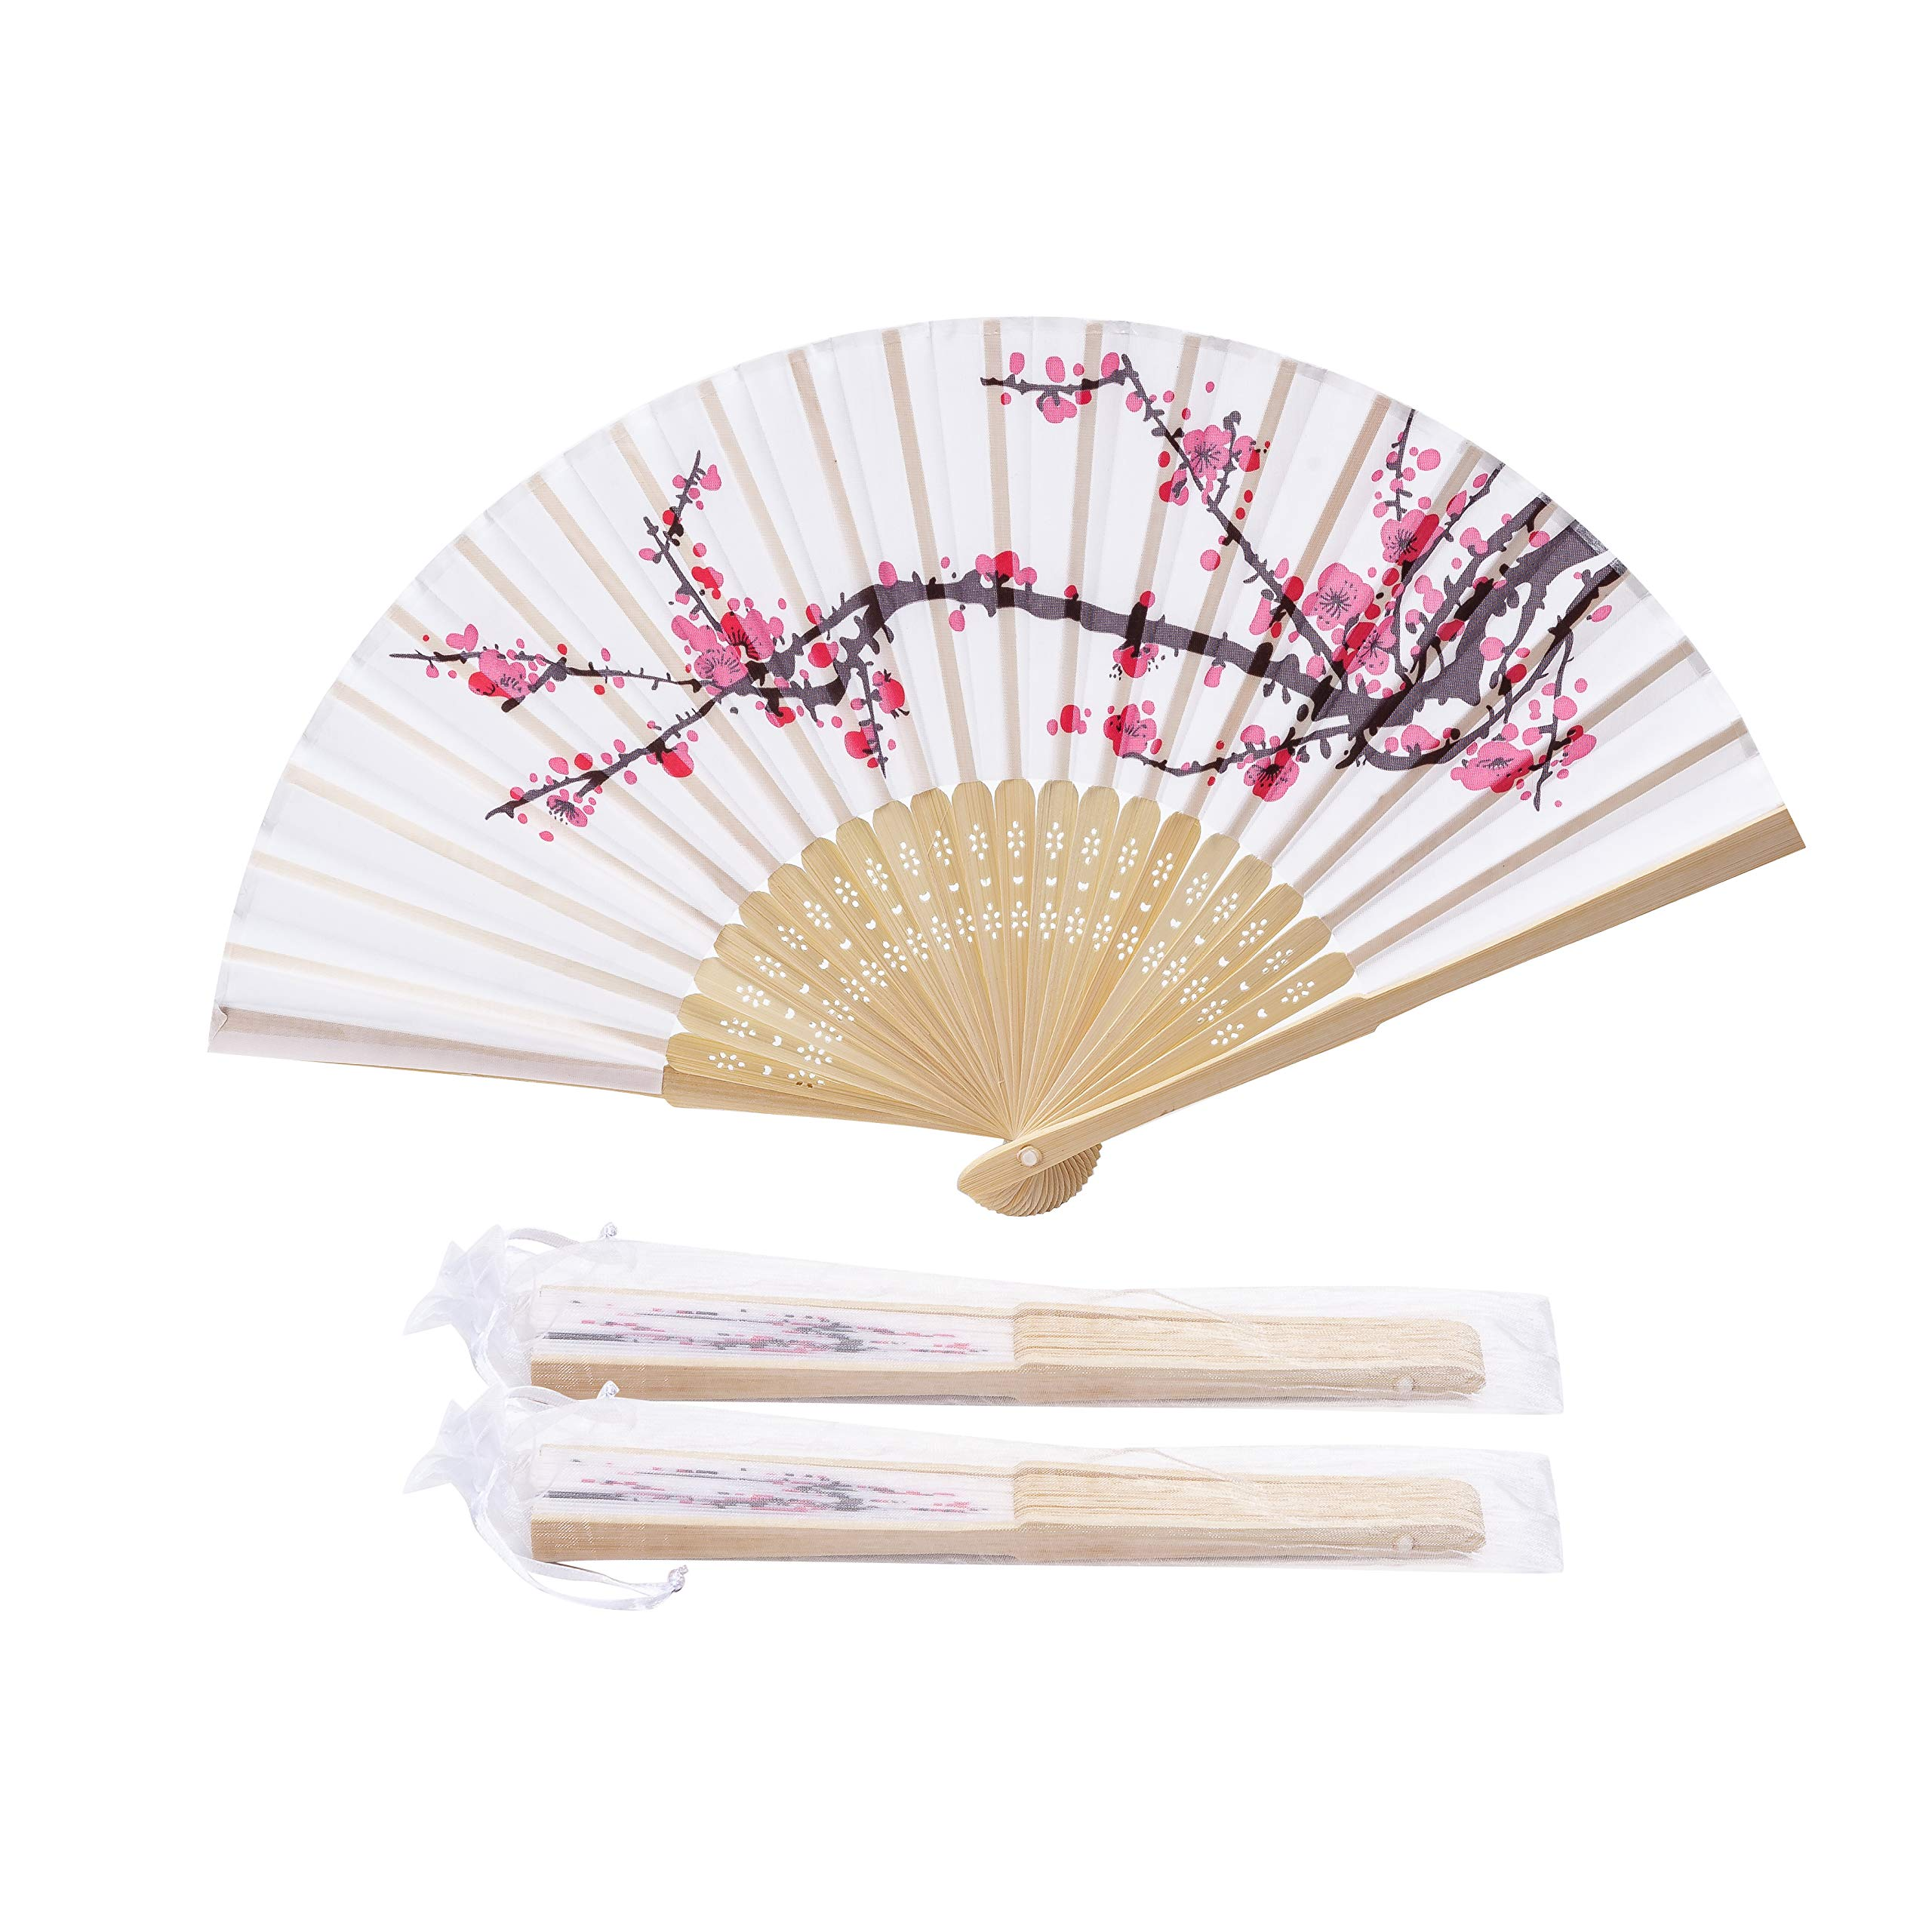 Sepwedd 50pcs Delicate Plum Blossom Blossom Design Imitated Silk Fabric Bamboo Folded Hand Fan Bridal Dancing Props Church Wedding Gift Party Favors with Gift Bags by Sepwedd